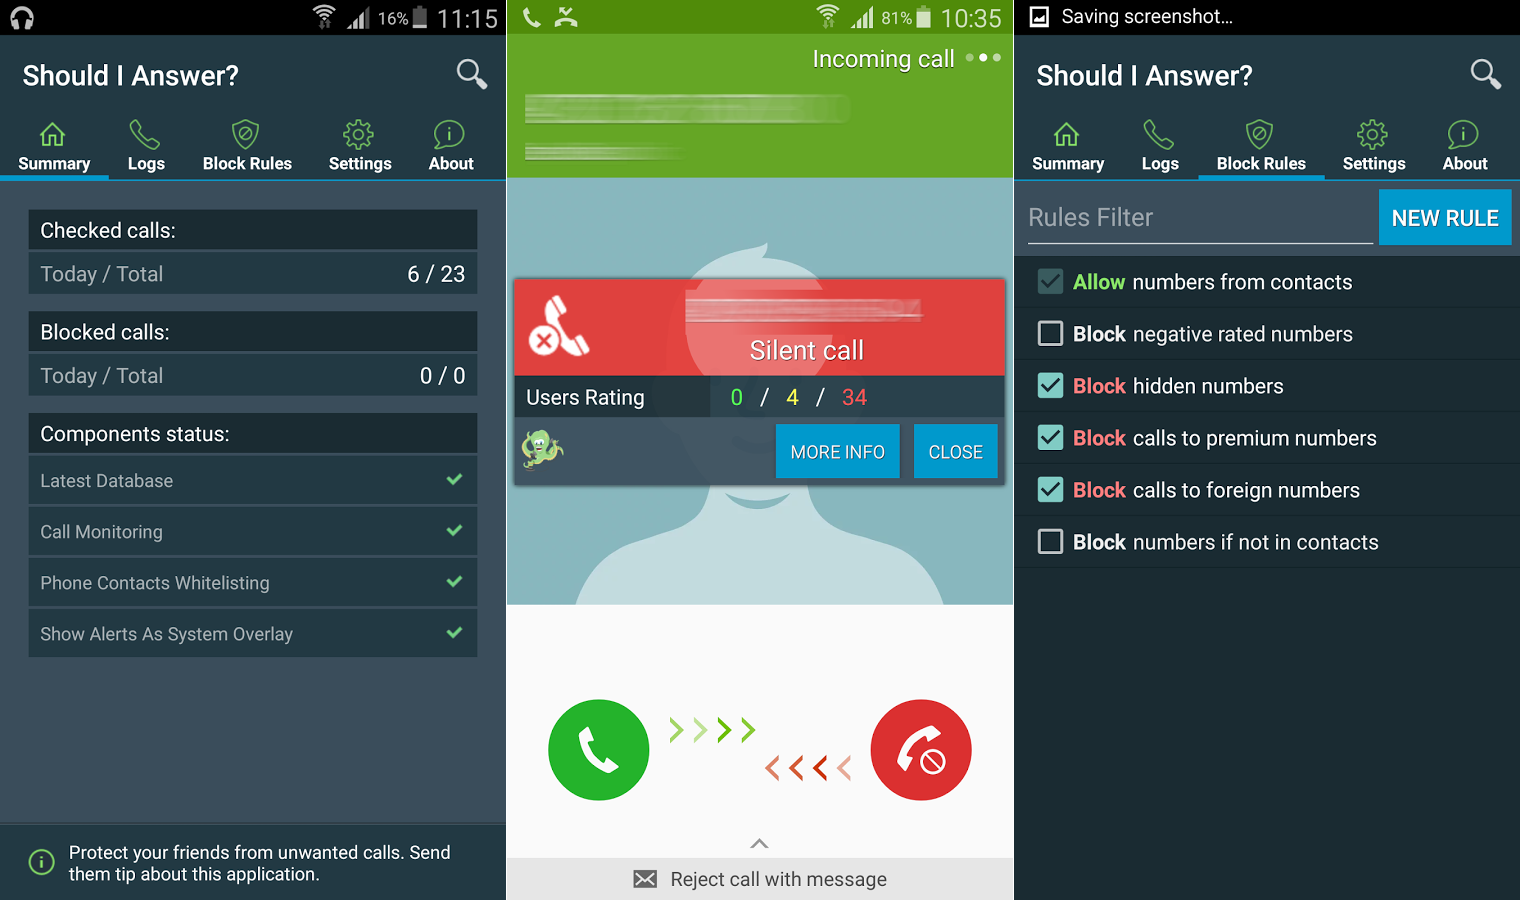 How To Block Calls And Texts On An Android Phone